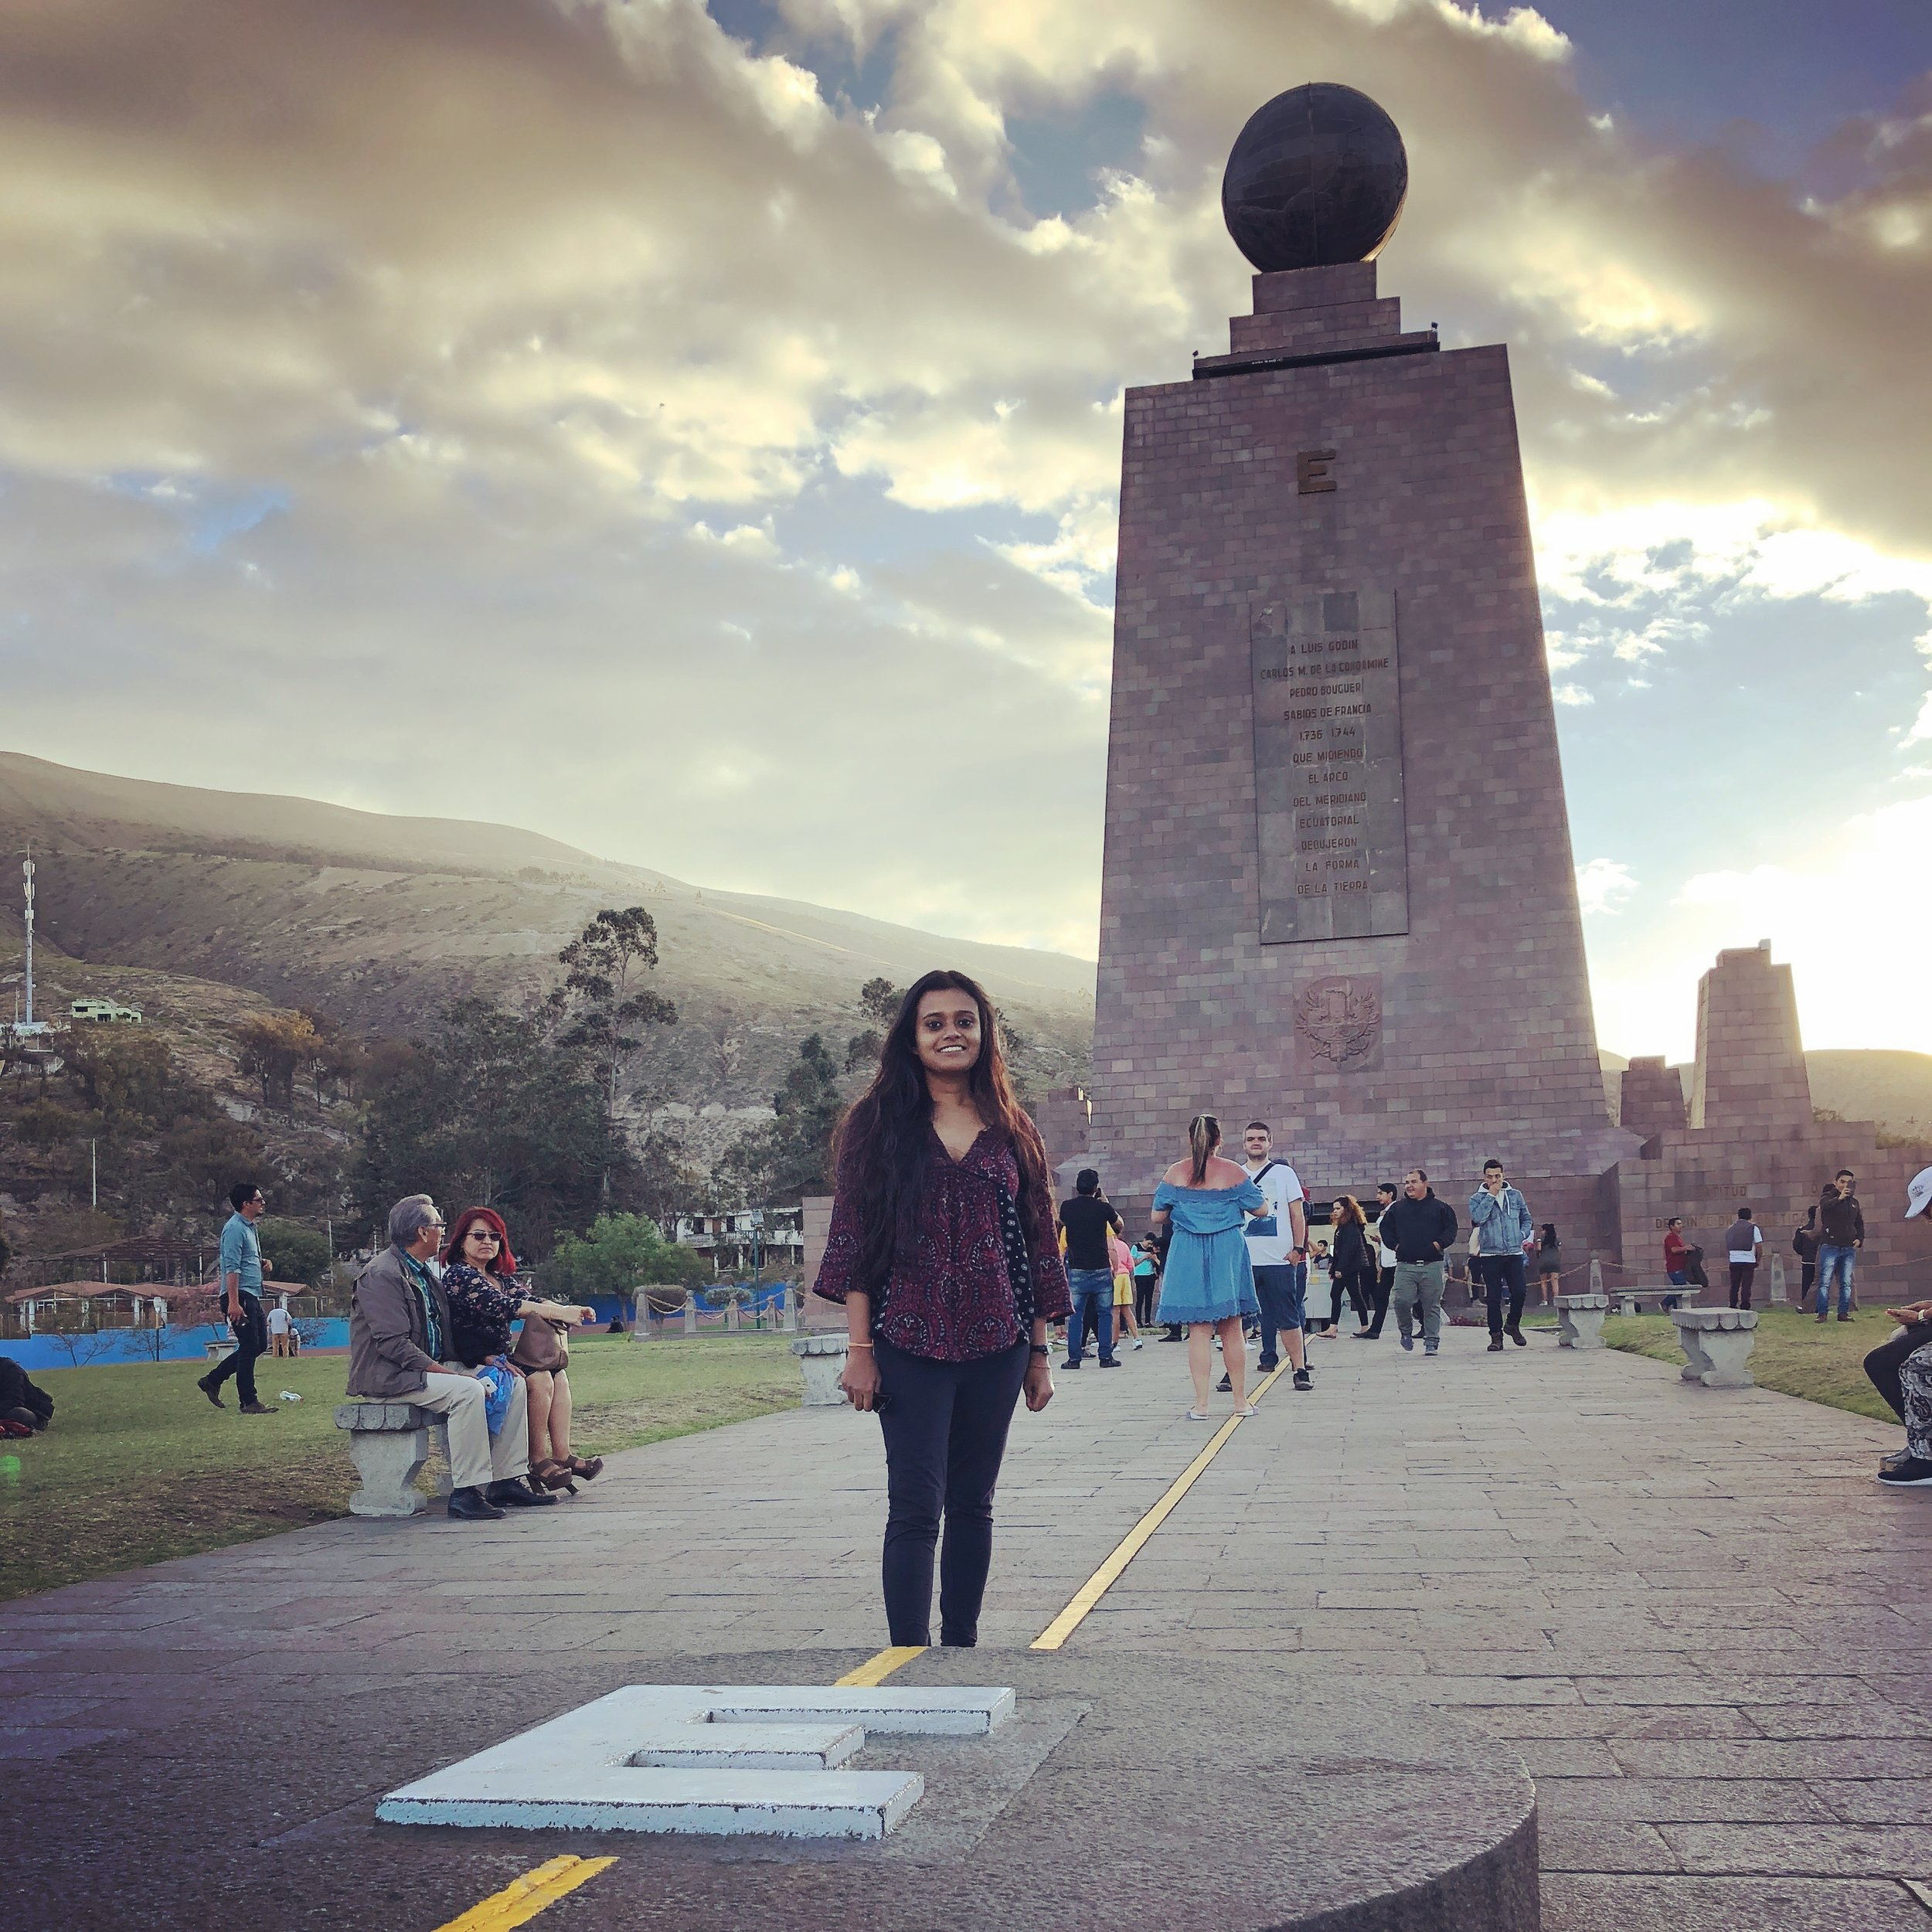 Traveling with a weak passport in Ecuador. At the El Mitad del Mundo (The Middle of the World). Ecuador is one of the very few countries, which is visa free for Indians. While flying to Ecuador from India can be expensive, you at least don't have to deal with ridiculous document requirements for a visa.